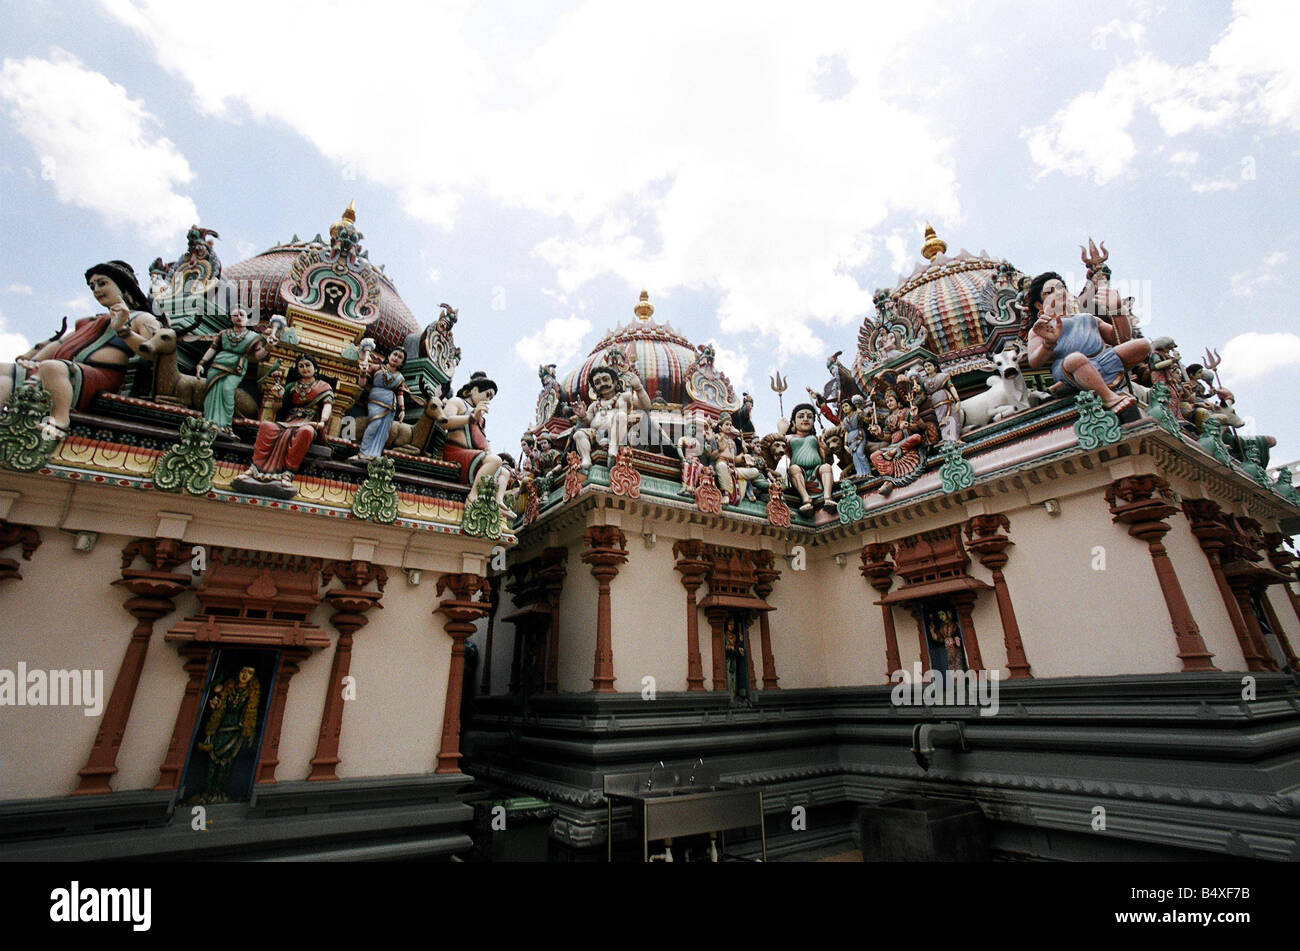 Sri Mariamman Temple 244 South Bridge Road Chinatown is the oldest Hindu temple in Singapore Its site was acquired - Stock Image